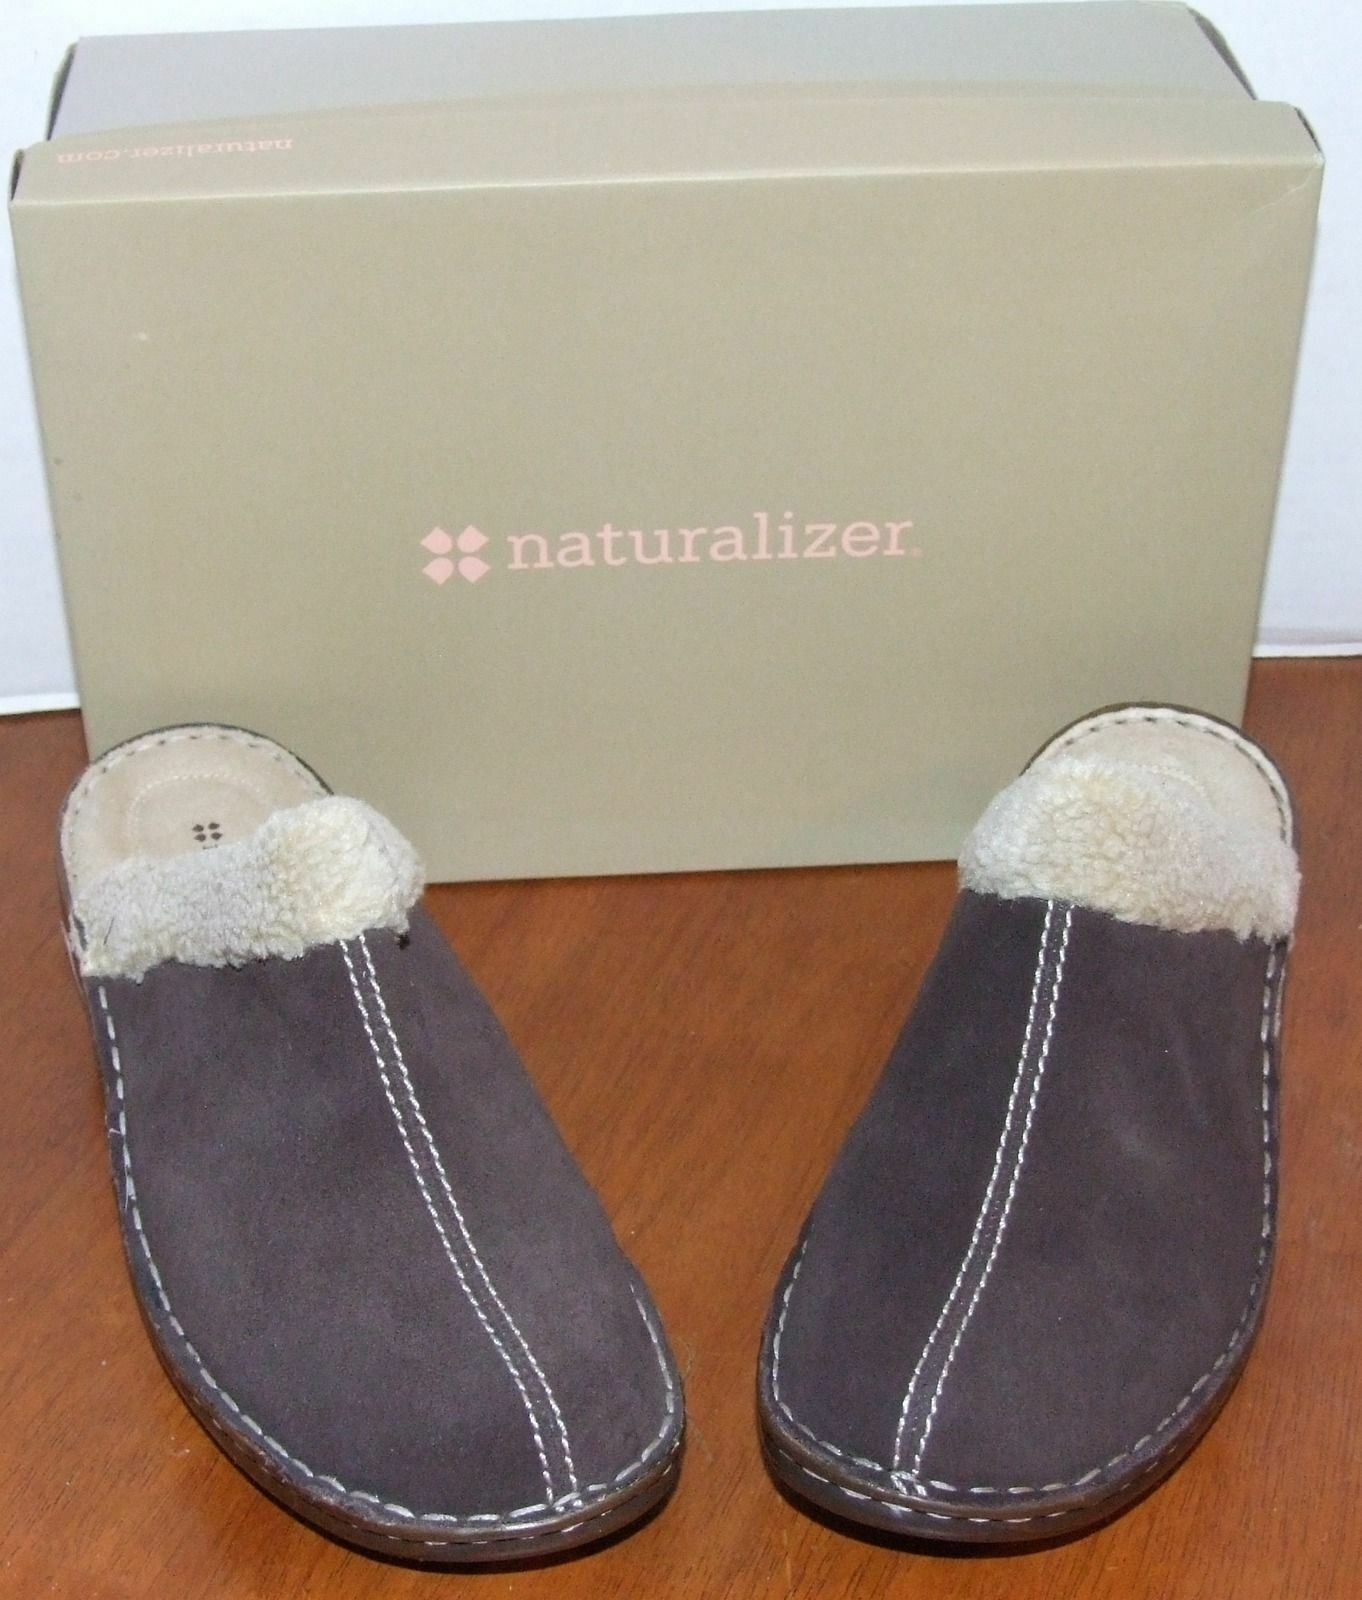 Naturalizer Sterri Oxford Brown or Black  Suede Clogs with Faux Fur Lining